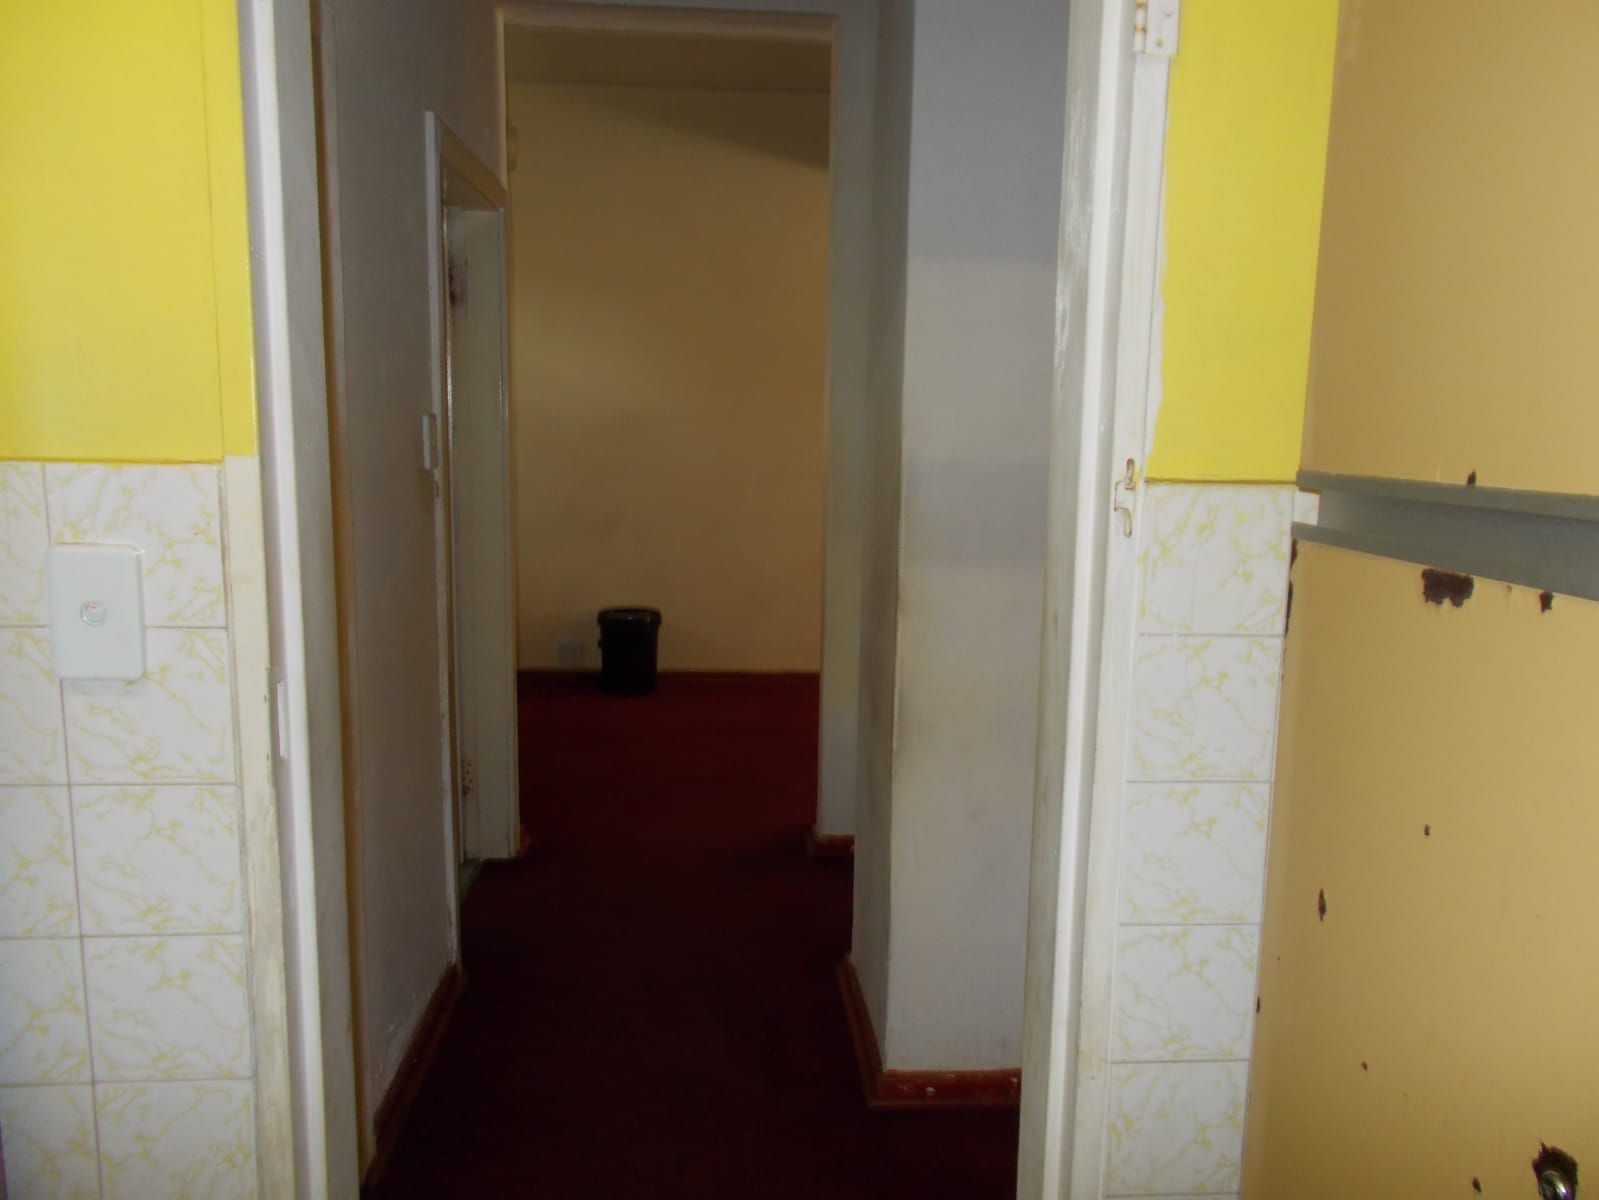 Apartment in Hillbrow - WhatsApp Image 2021-01-12 at 13.04.00 (1).jpeg